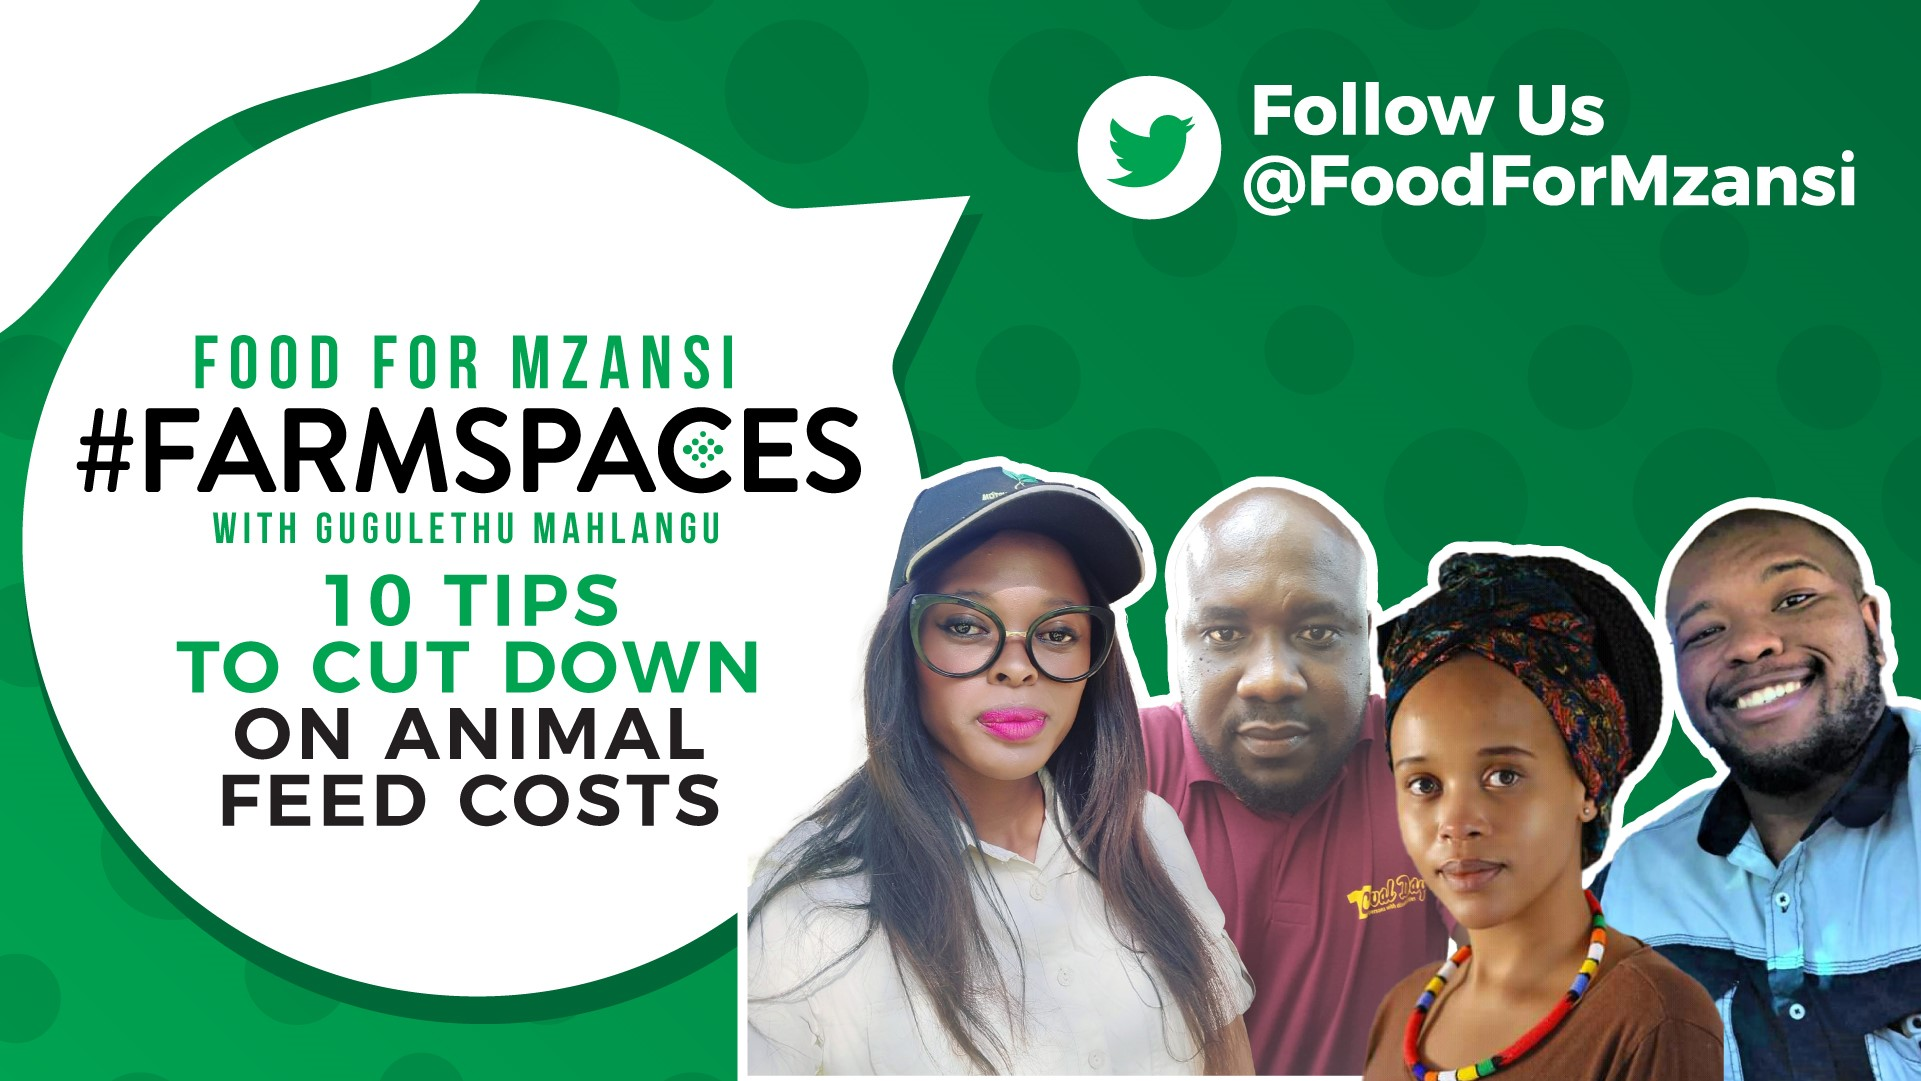 This week on Food for Mzansi #FarmSpaces, we explore how to cut costs on animal feed. Photo: Supplied/Food for Mzansi.